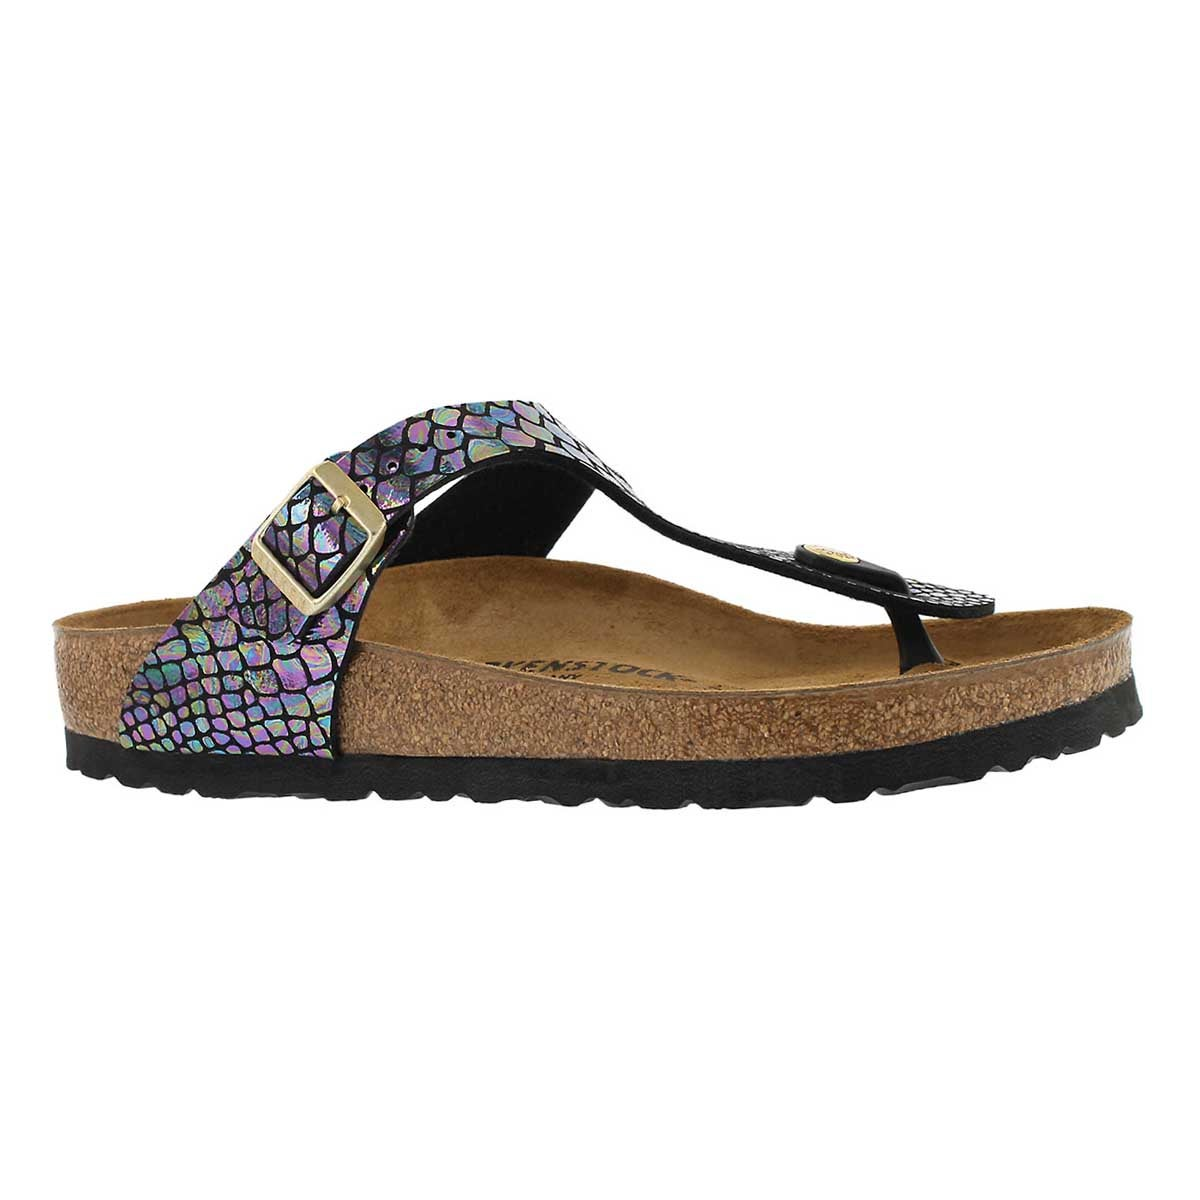 Women's GIZEH shiny snake multi coloured sandal